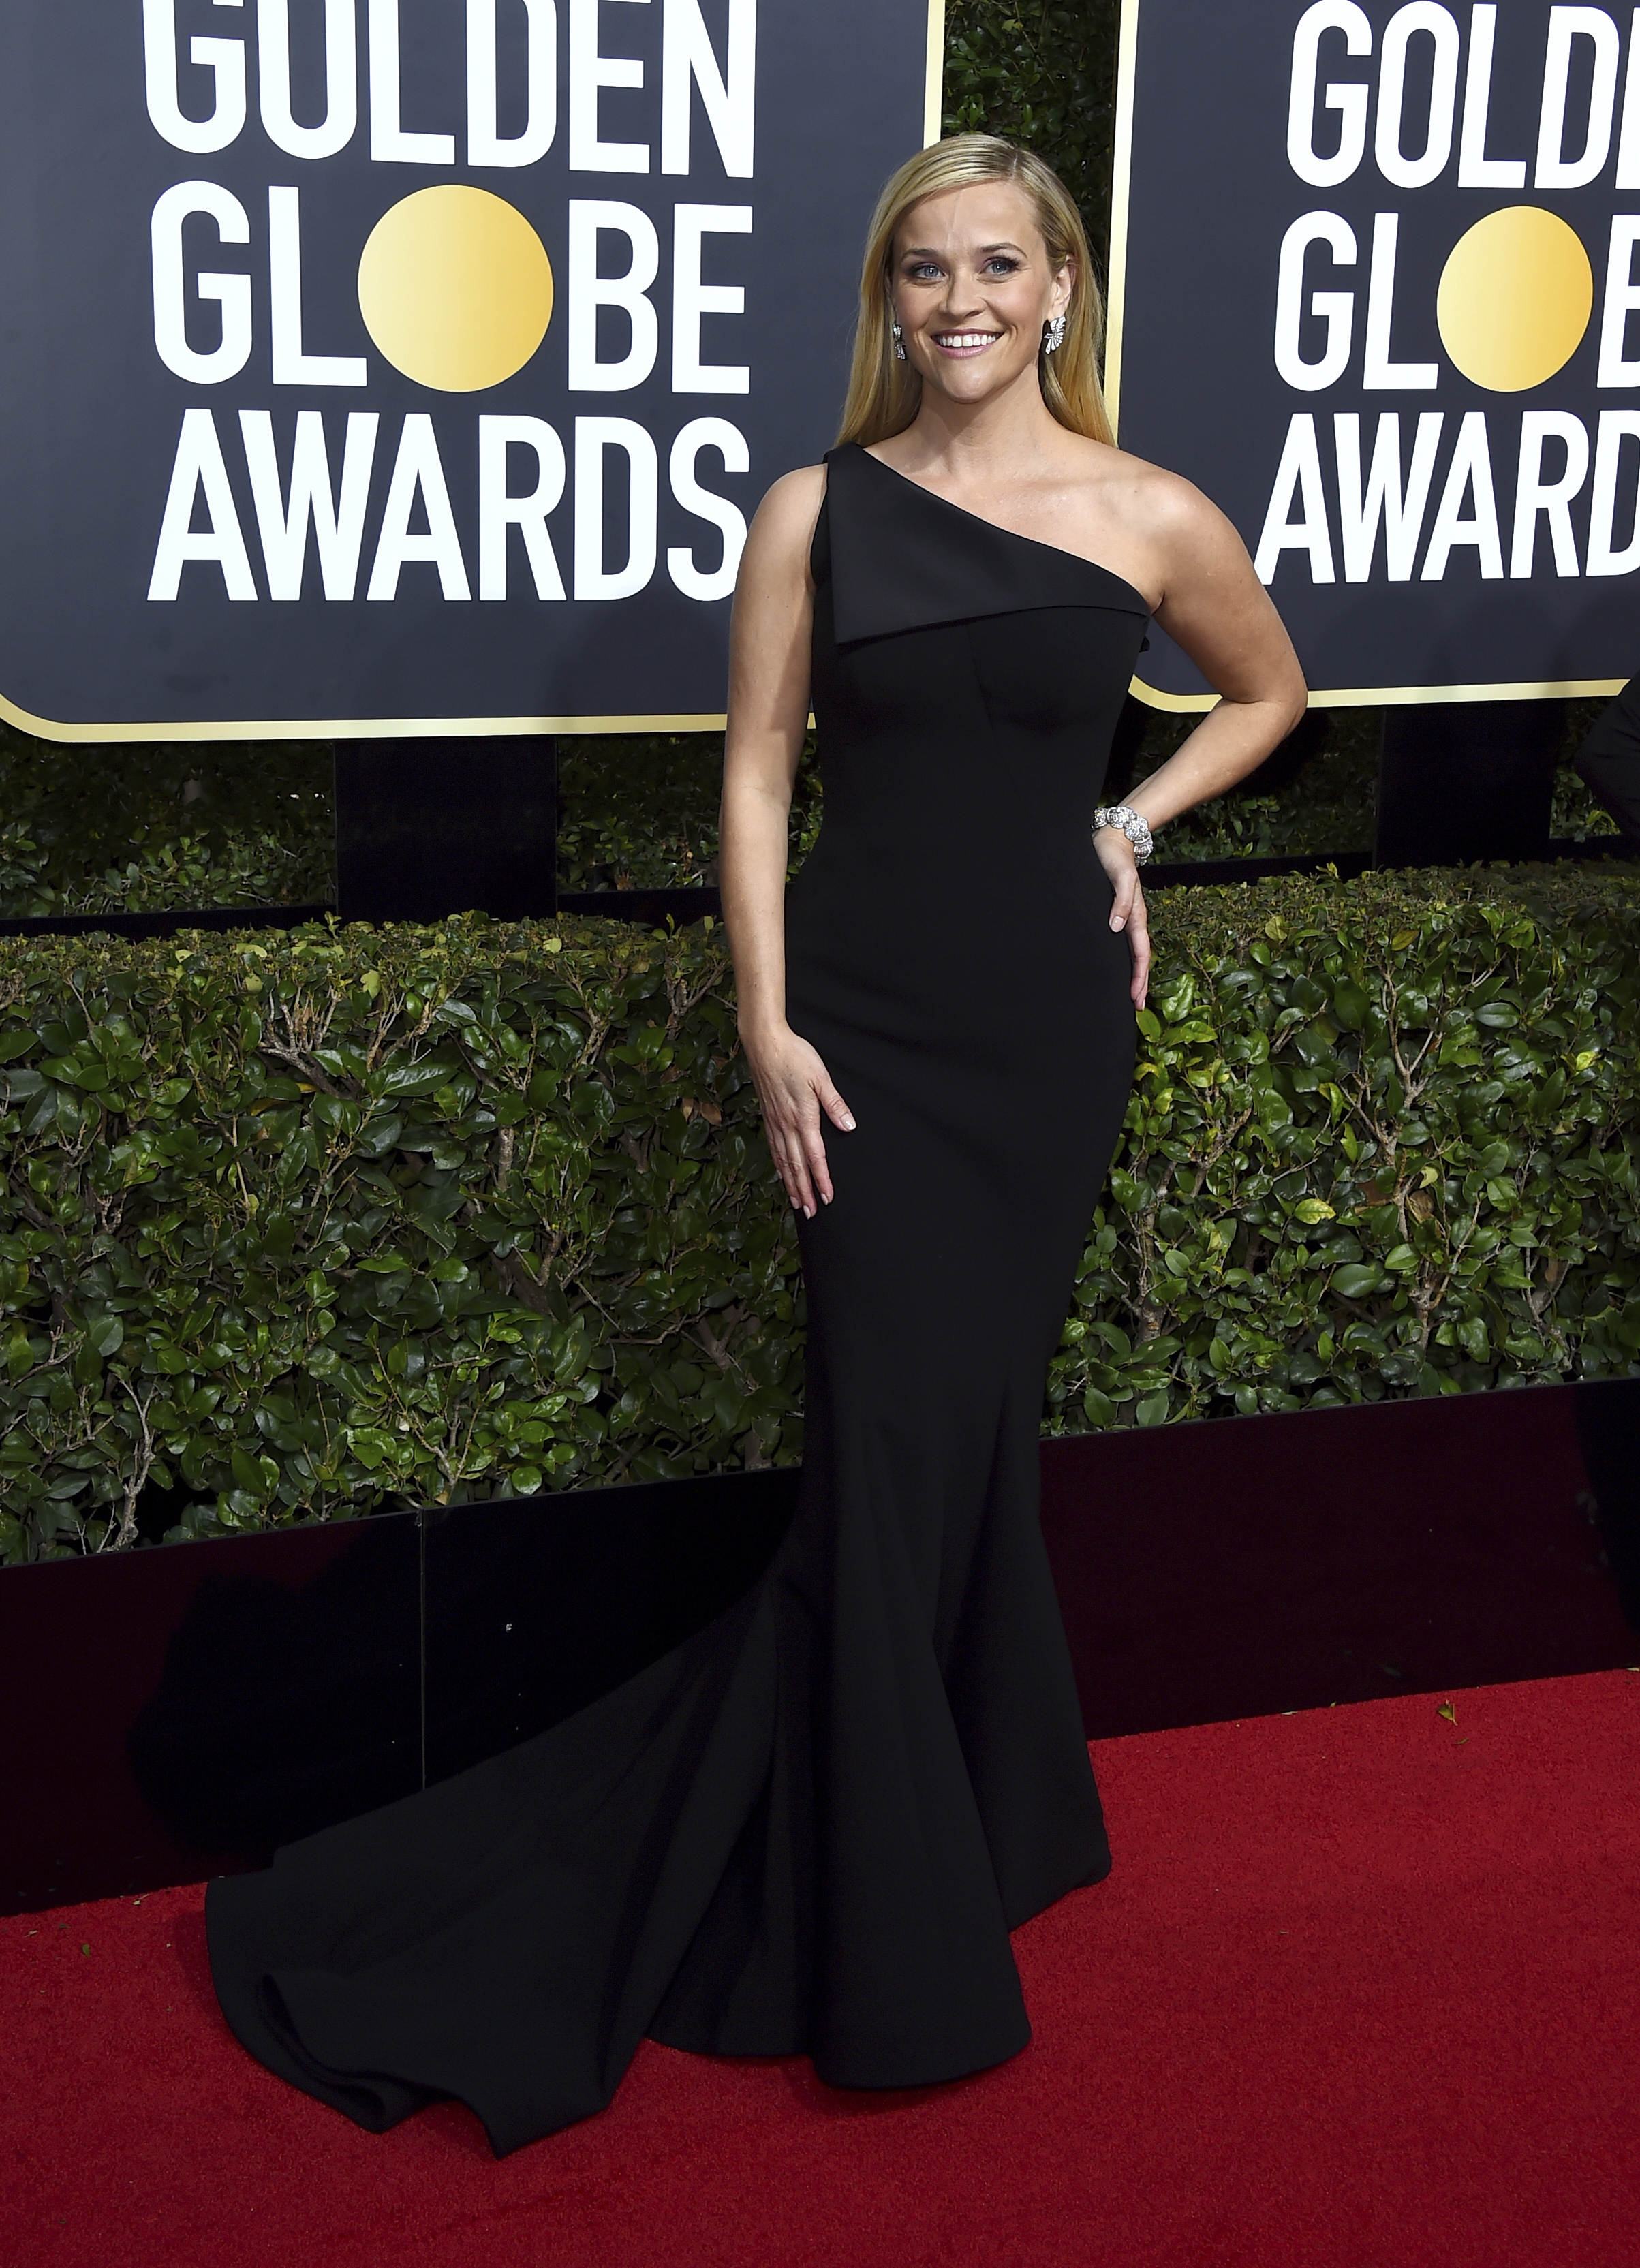 <div class='meta'><div class='origin-logo' data-origin='AP'></div><span class='caption-text' data-credit='Jordan Strauss/Invision/AP'>Reese Witherspoon arrives at the 75th annual Golden Globe Awards at the Beverly Hilton Hotel on Sunday, Jan. 7, 2018, in Beverly Hills, Calif.</span></div>